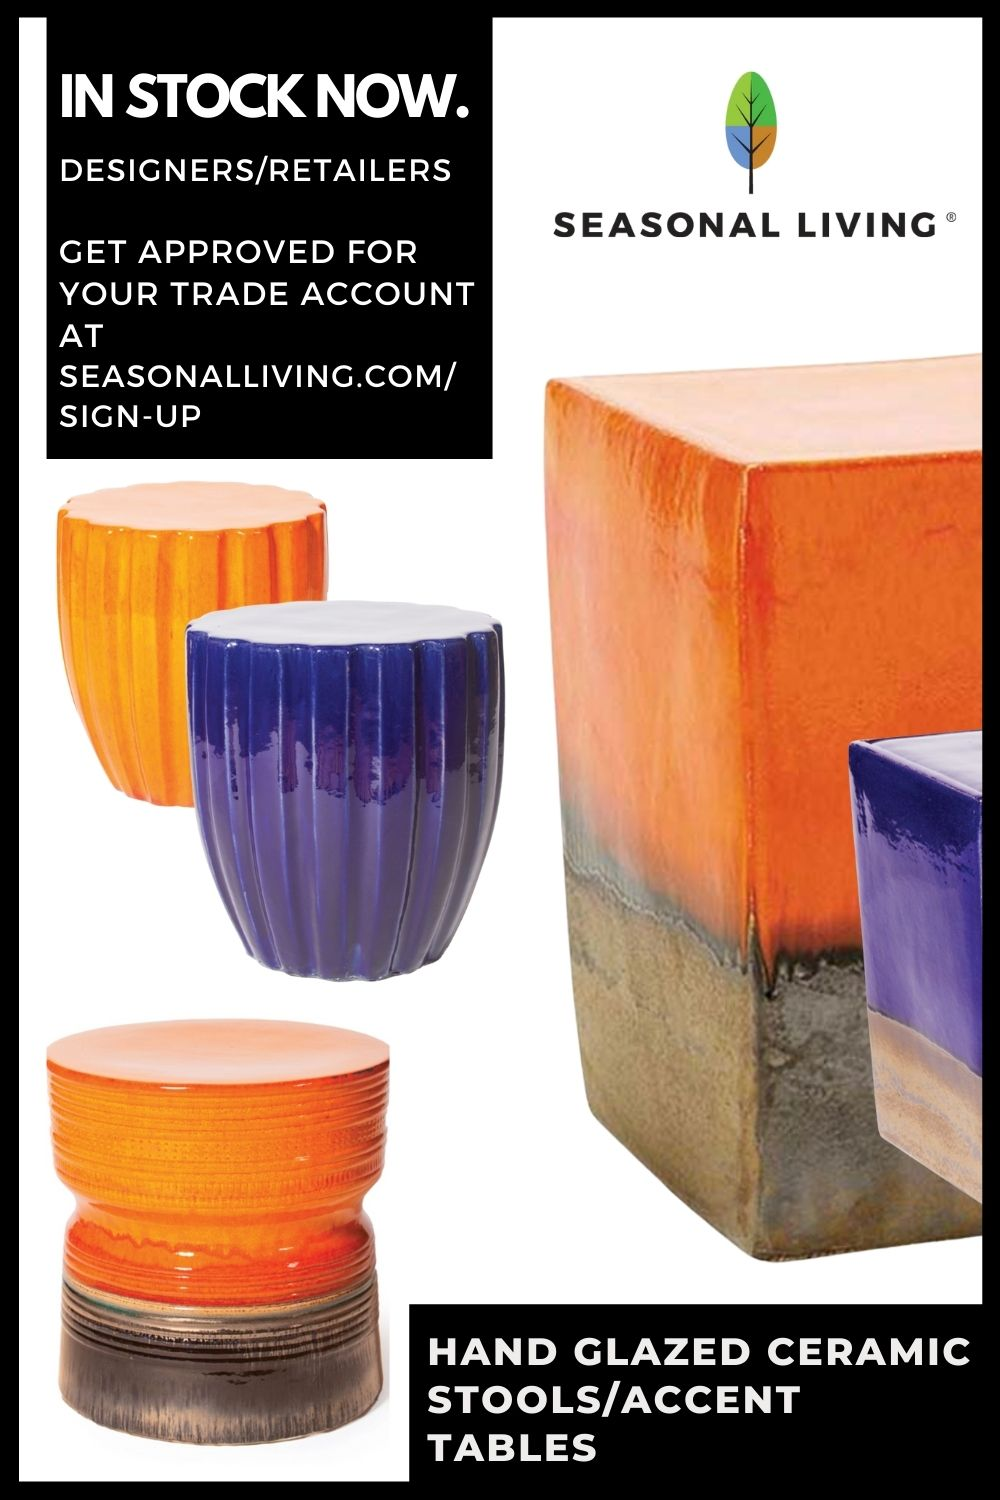 Hand Glazed Ceramic Tables From Seasonal Living for indoor outdoor in stock